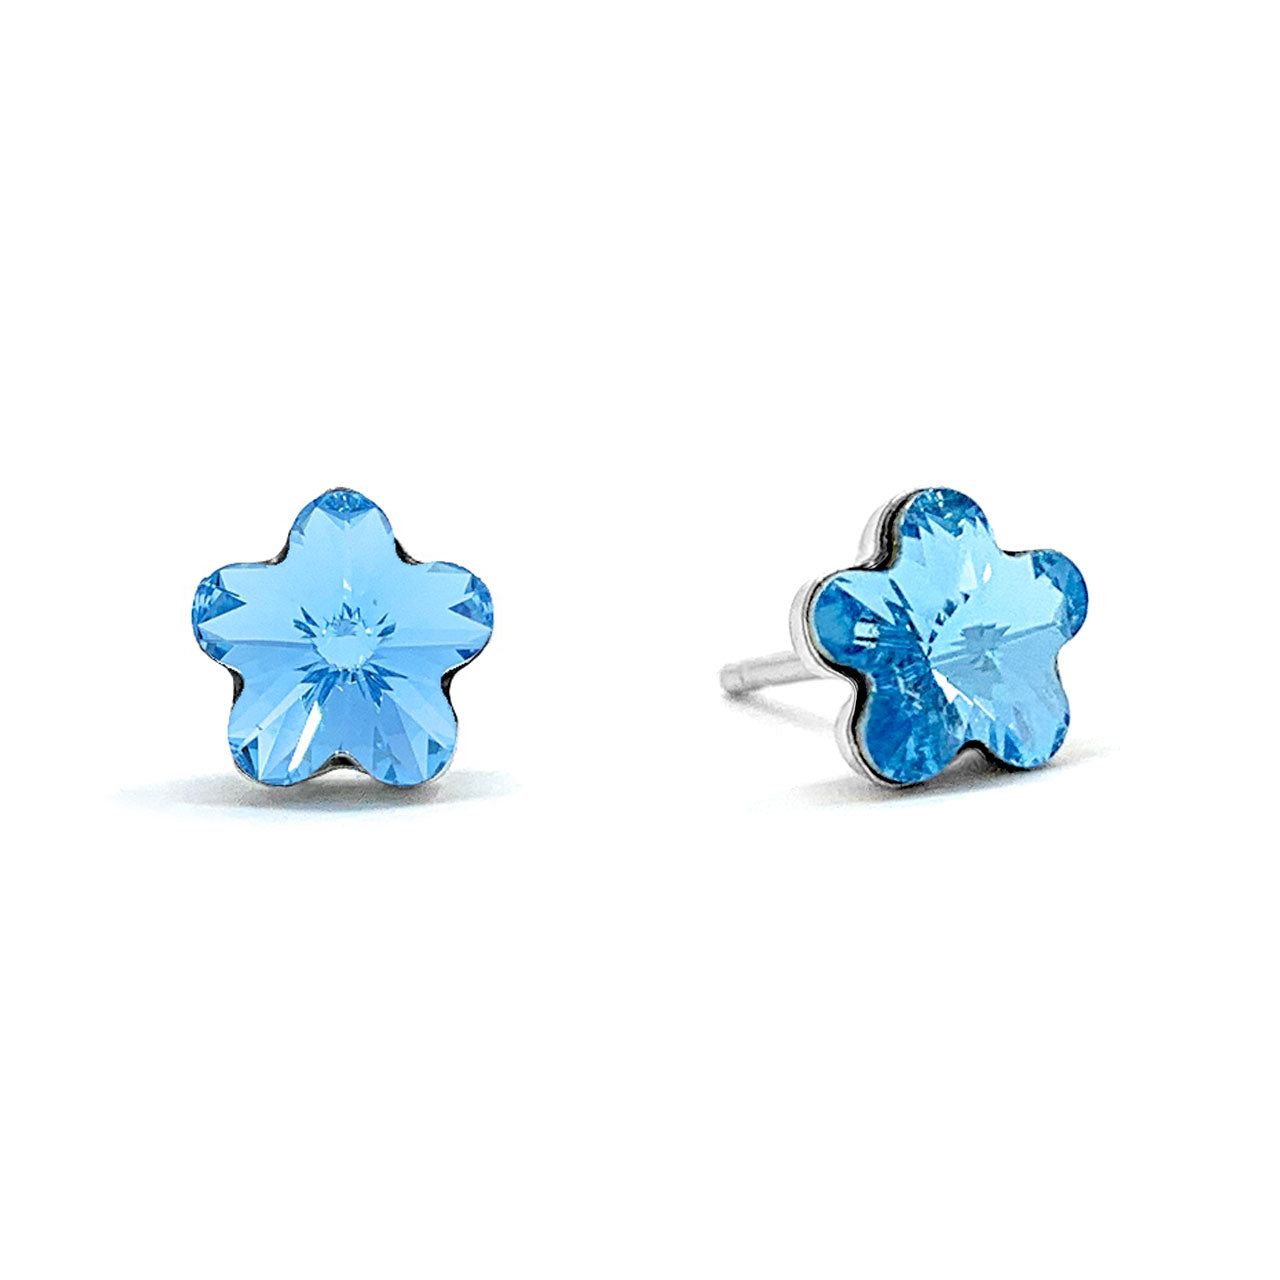 Anna Small Stud Earrings with Blue Aquamarine Flower Crystals from Swarovski Silver Toned Rhodium Plated - Ed Heart